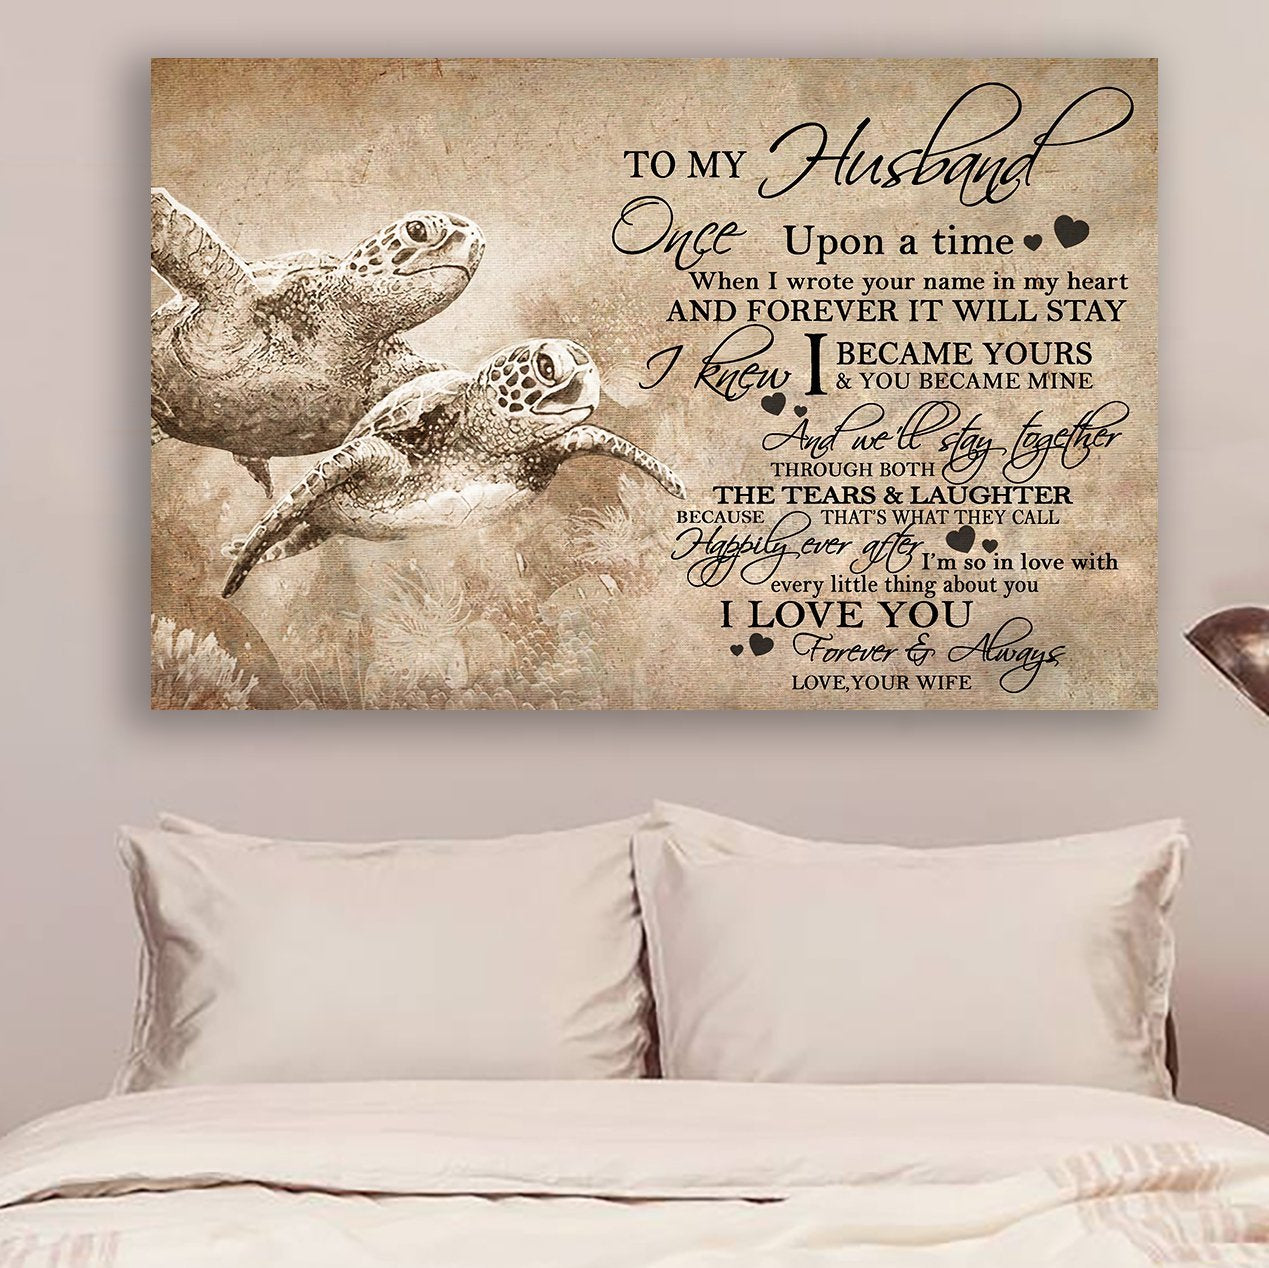 (cv1056) LHD Turtle poster - Wife to husband - Once a upon a time